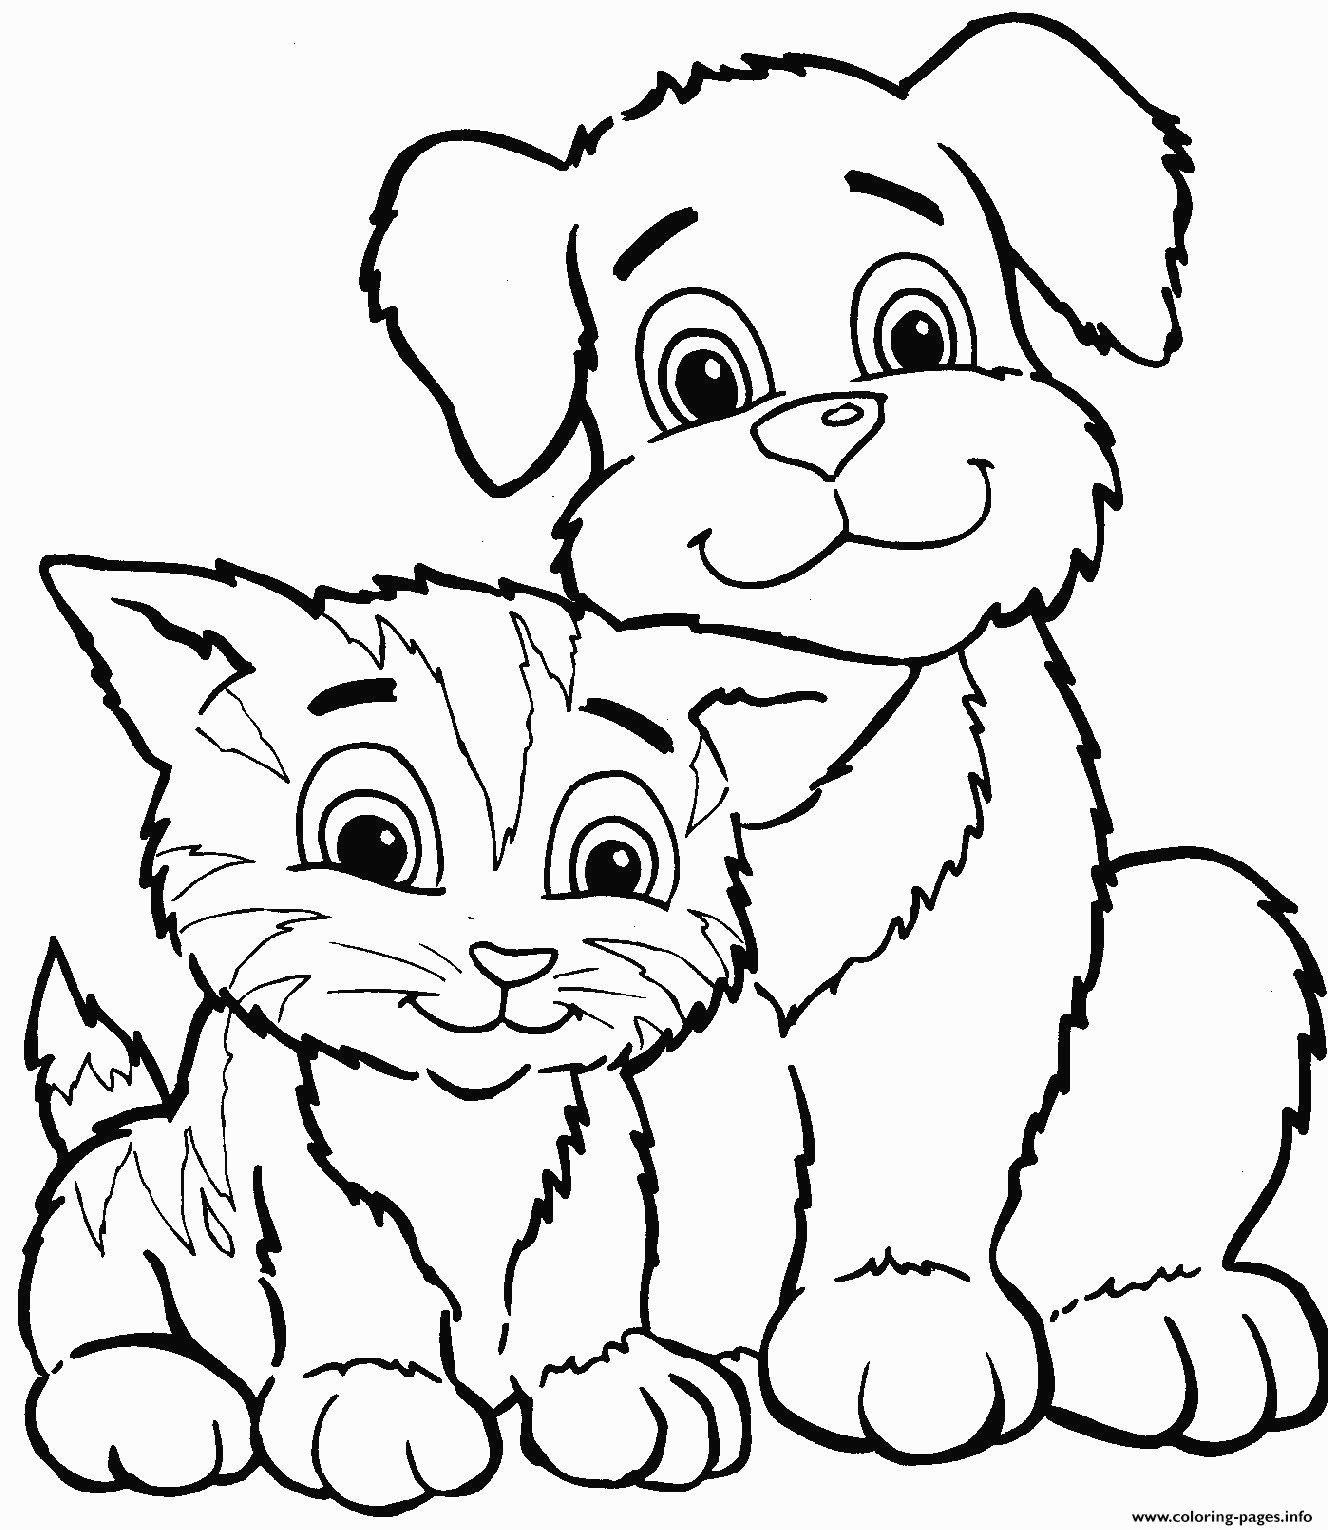 Kitty Cat Coloring Pages Beautiful Unique Warrior Cat Coloring